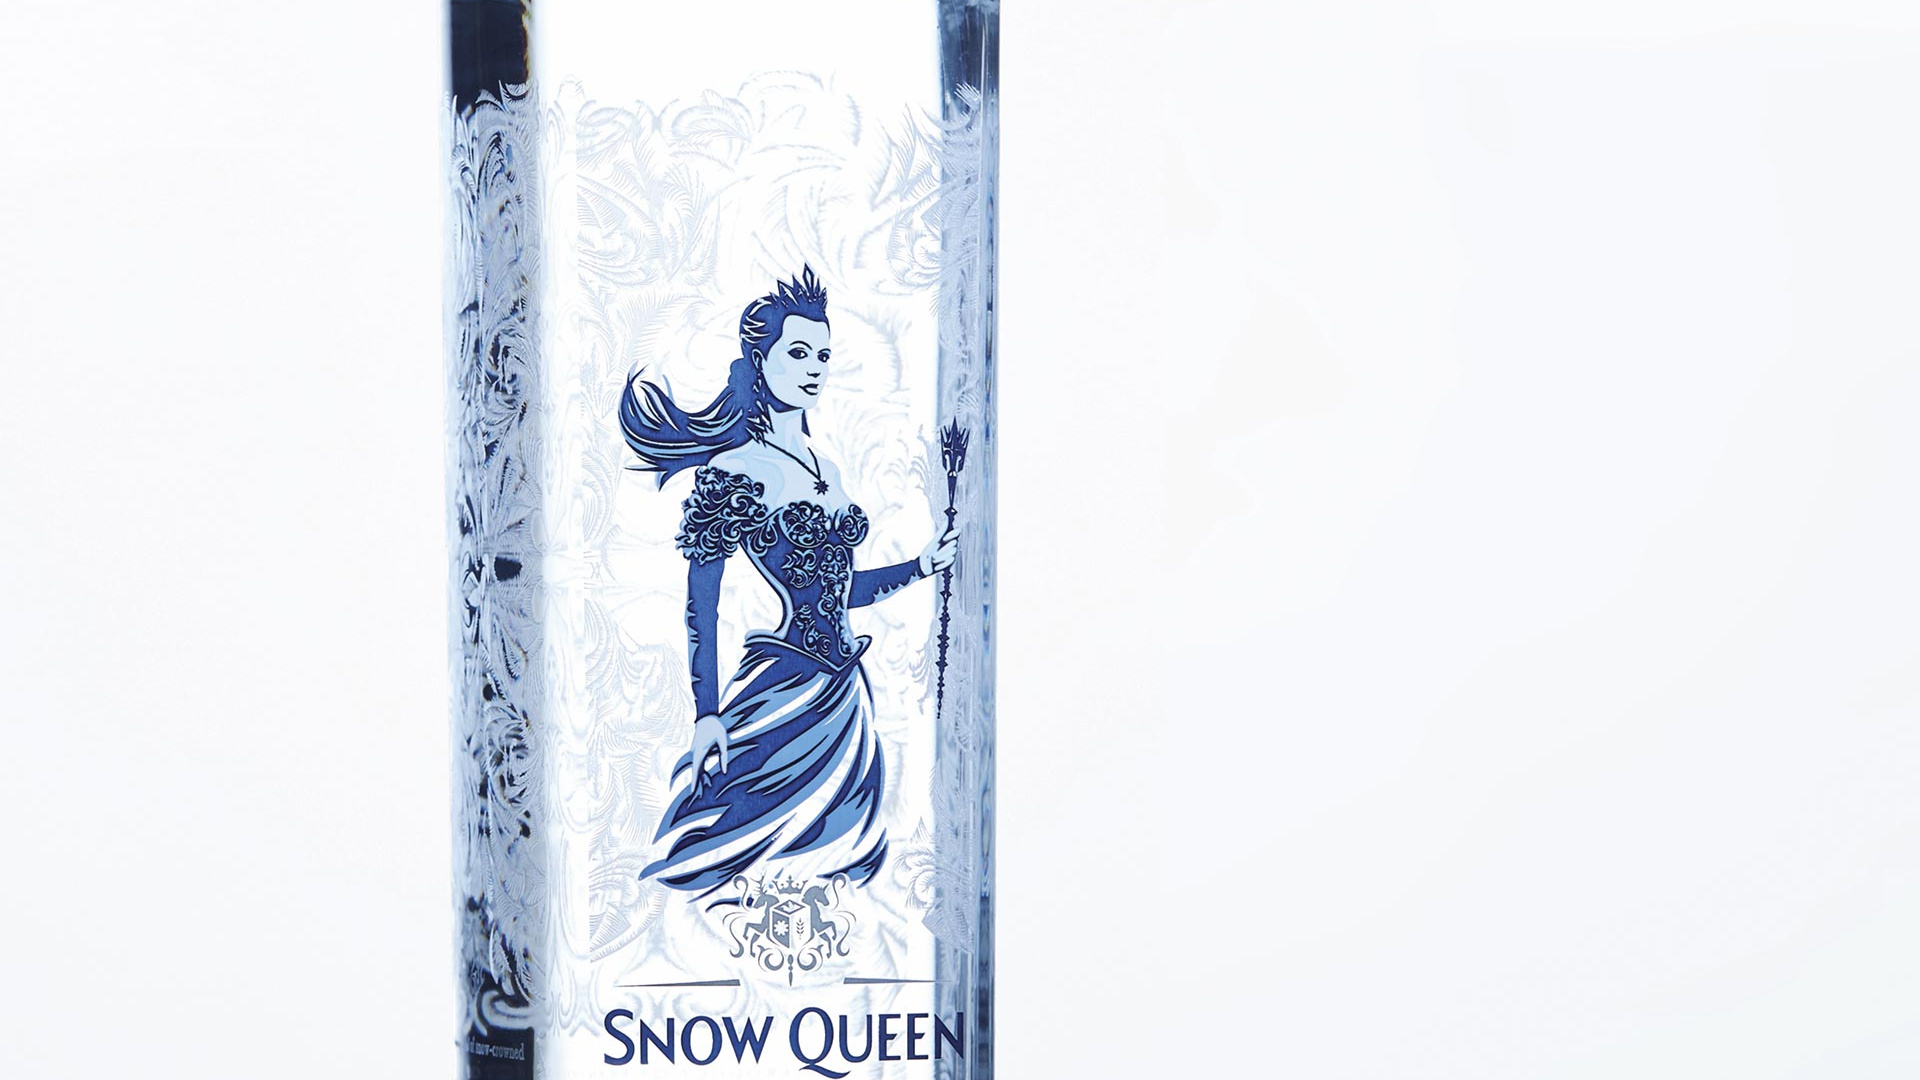 Bottle of Snow Queen vodka with its wintery blue logo on a white background